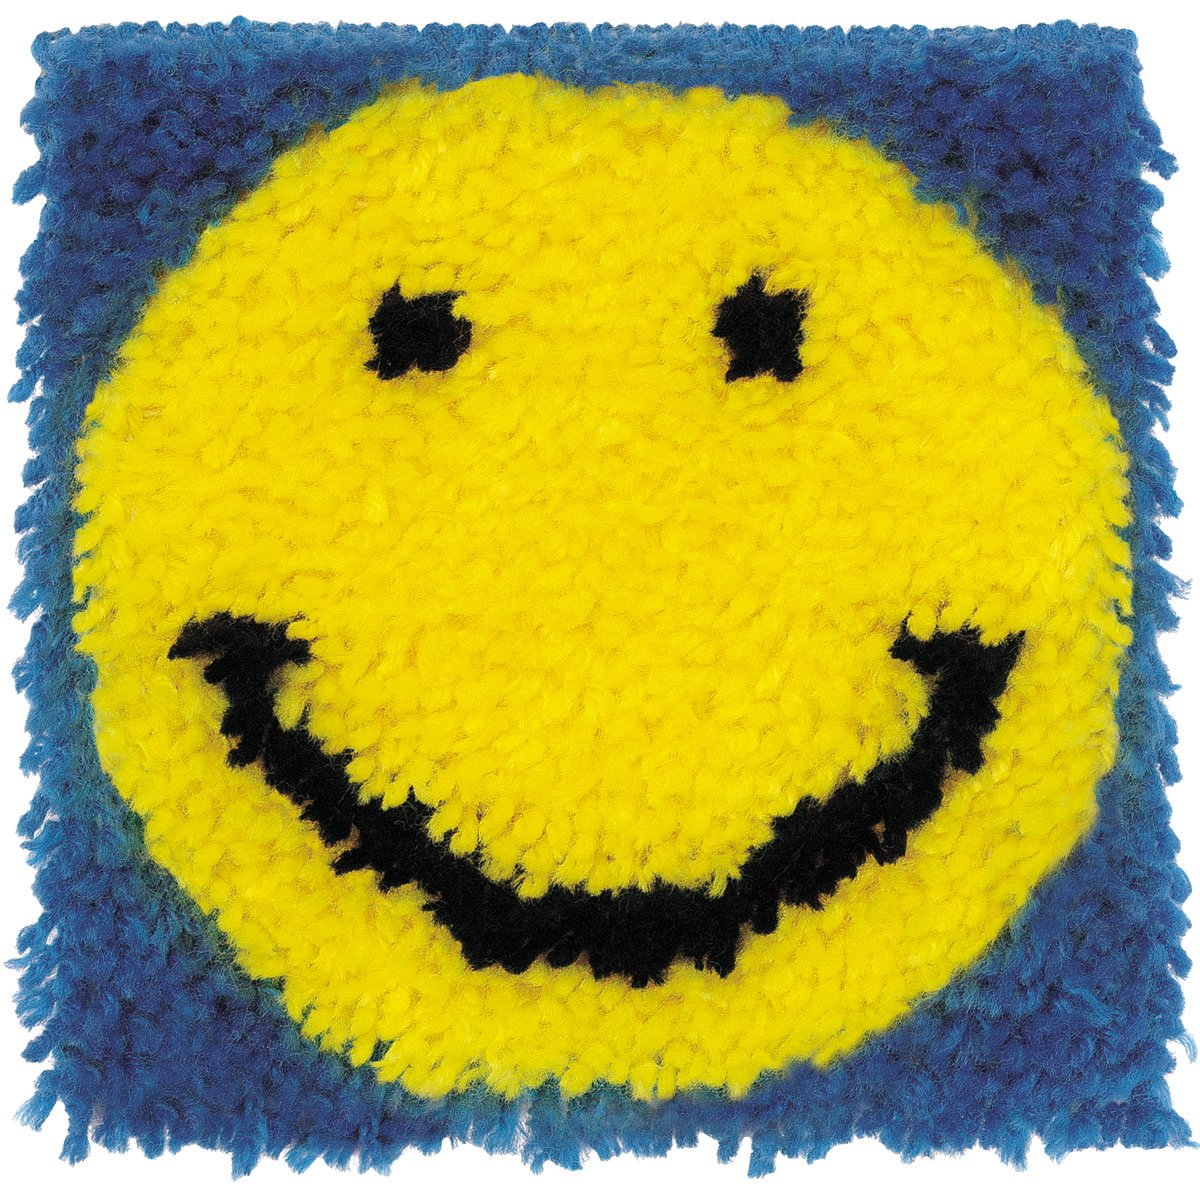 Spinrite Wonderart Latch Hook Kit, 8 by 8-Inch, Smiling Face 426179C